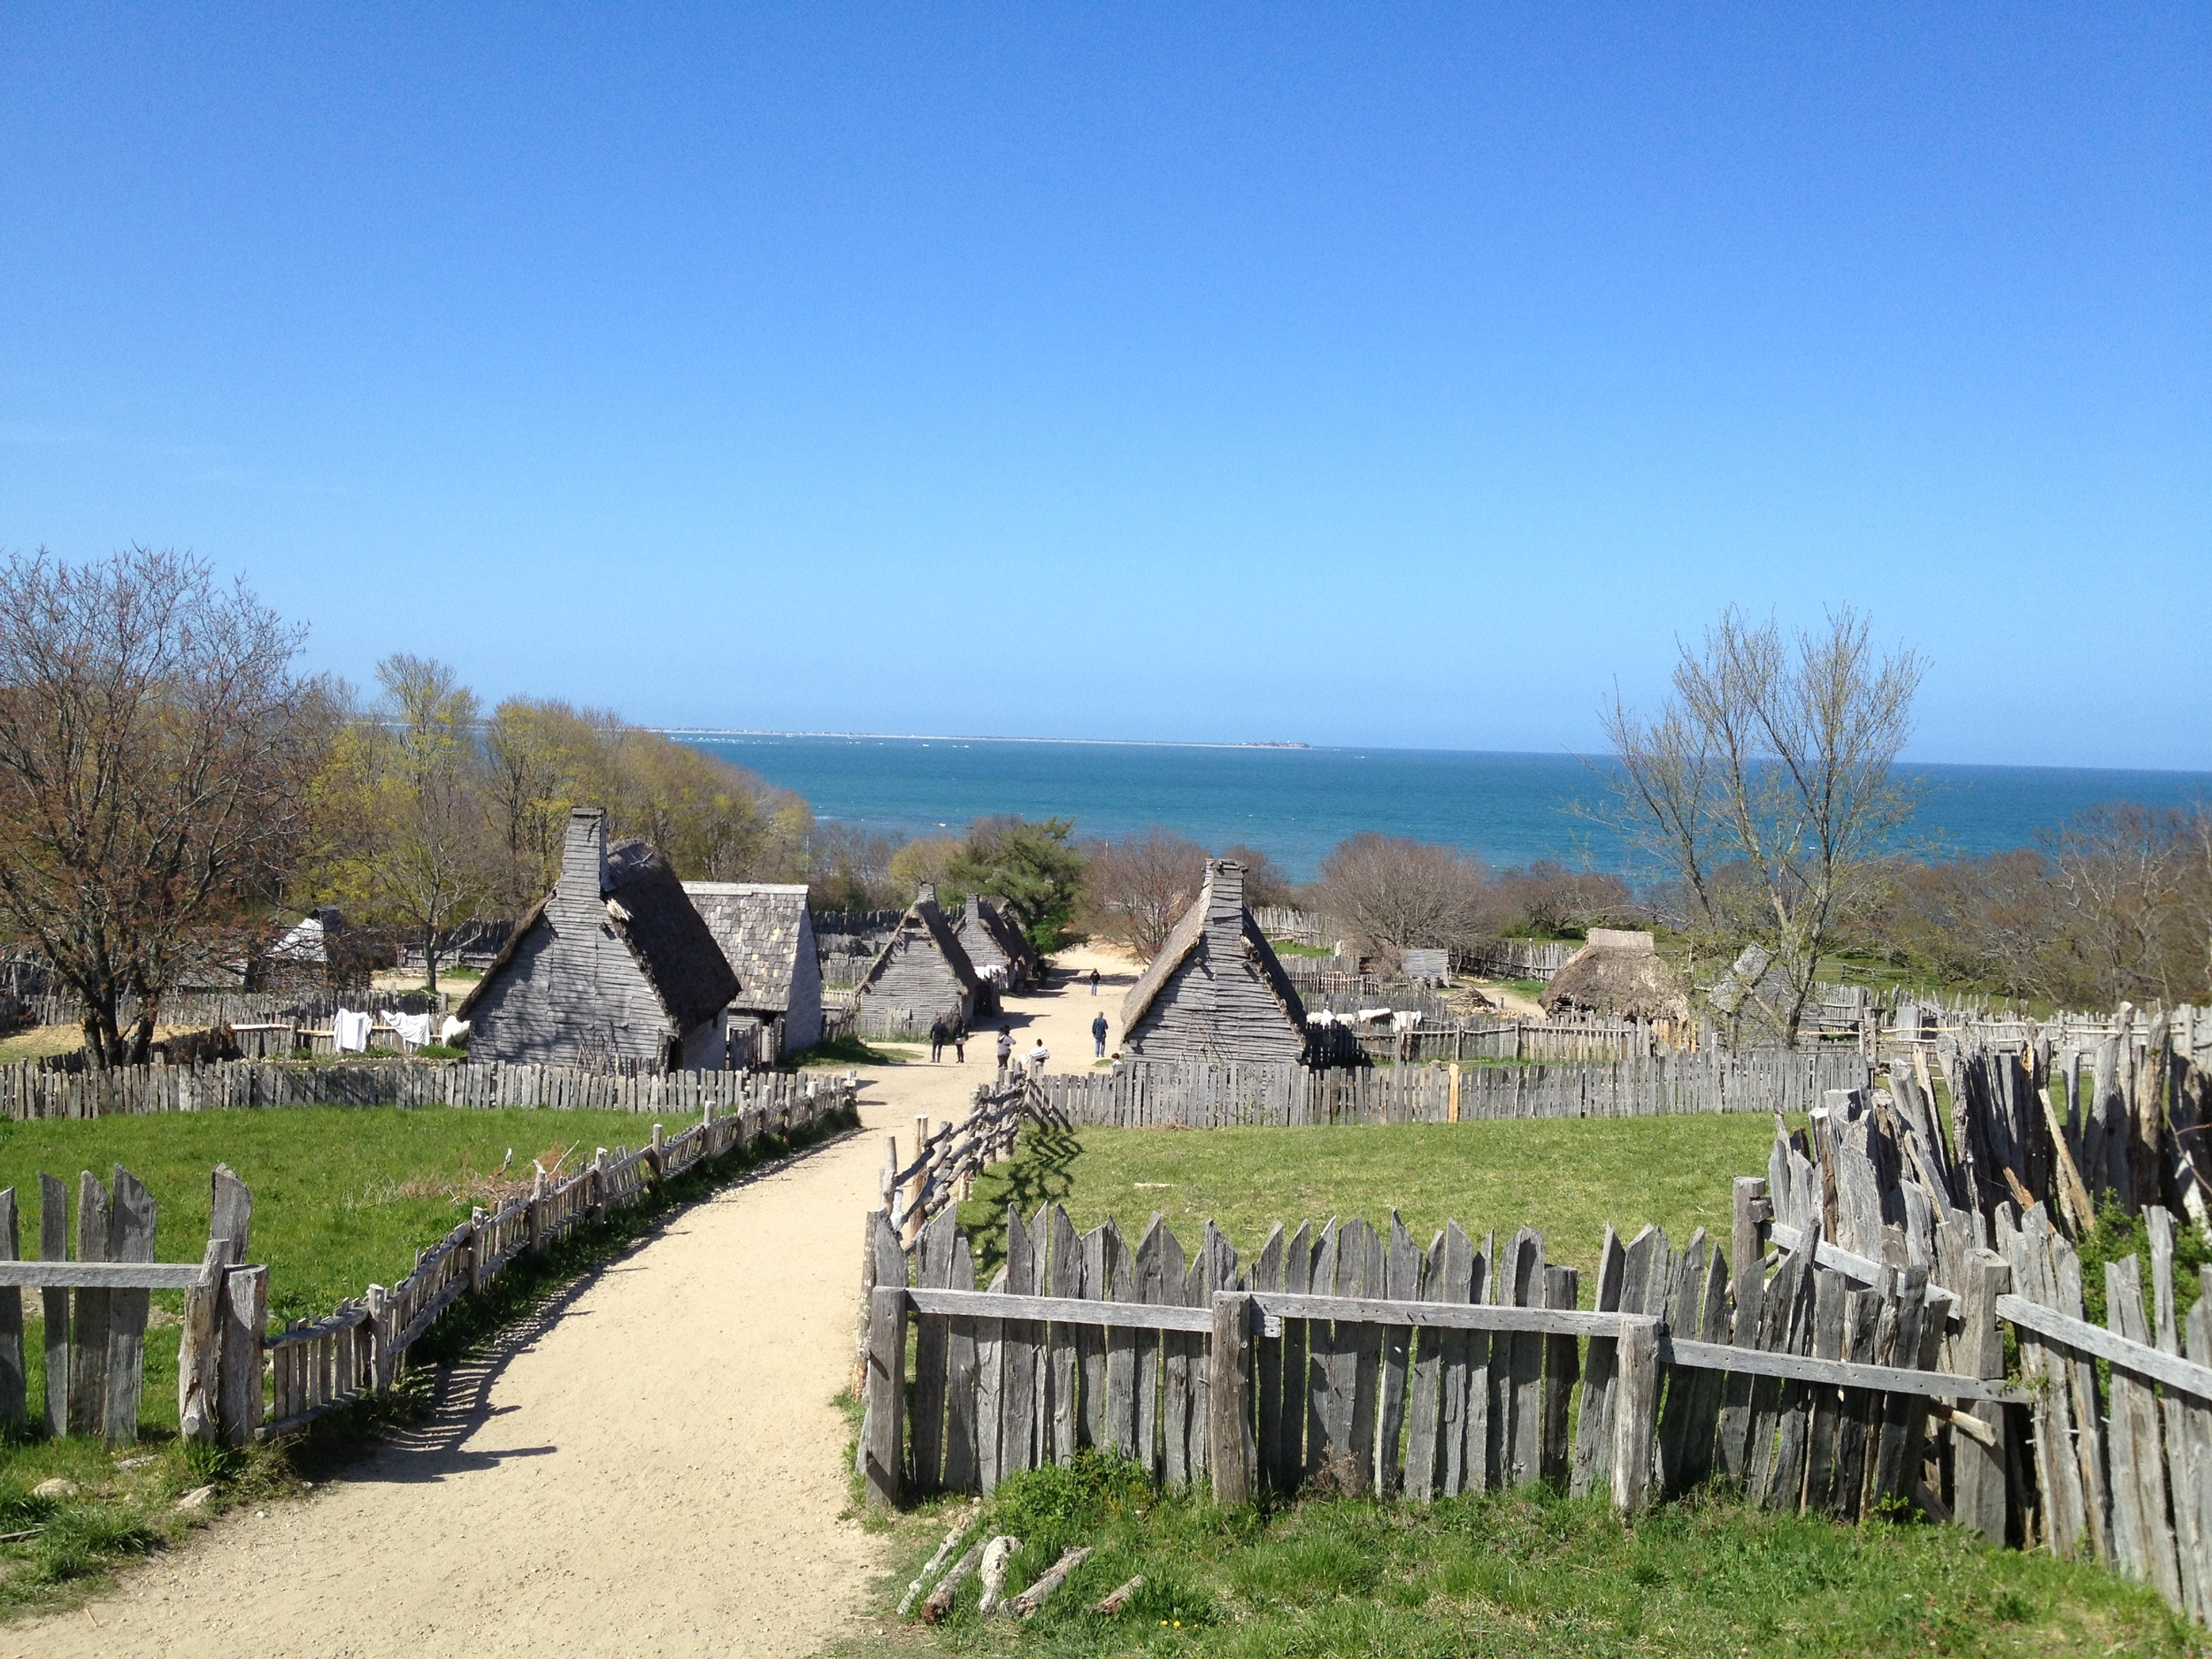 A view of the recreation of the first settlement, Plimouth Plantation.